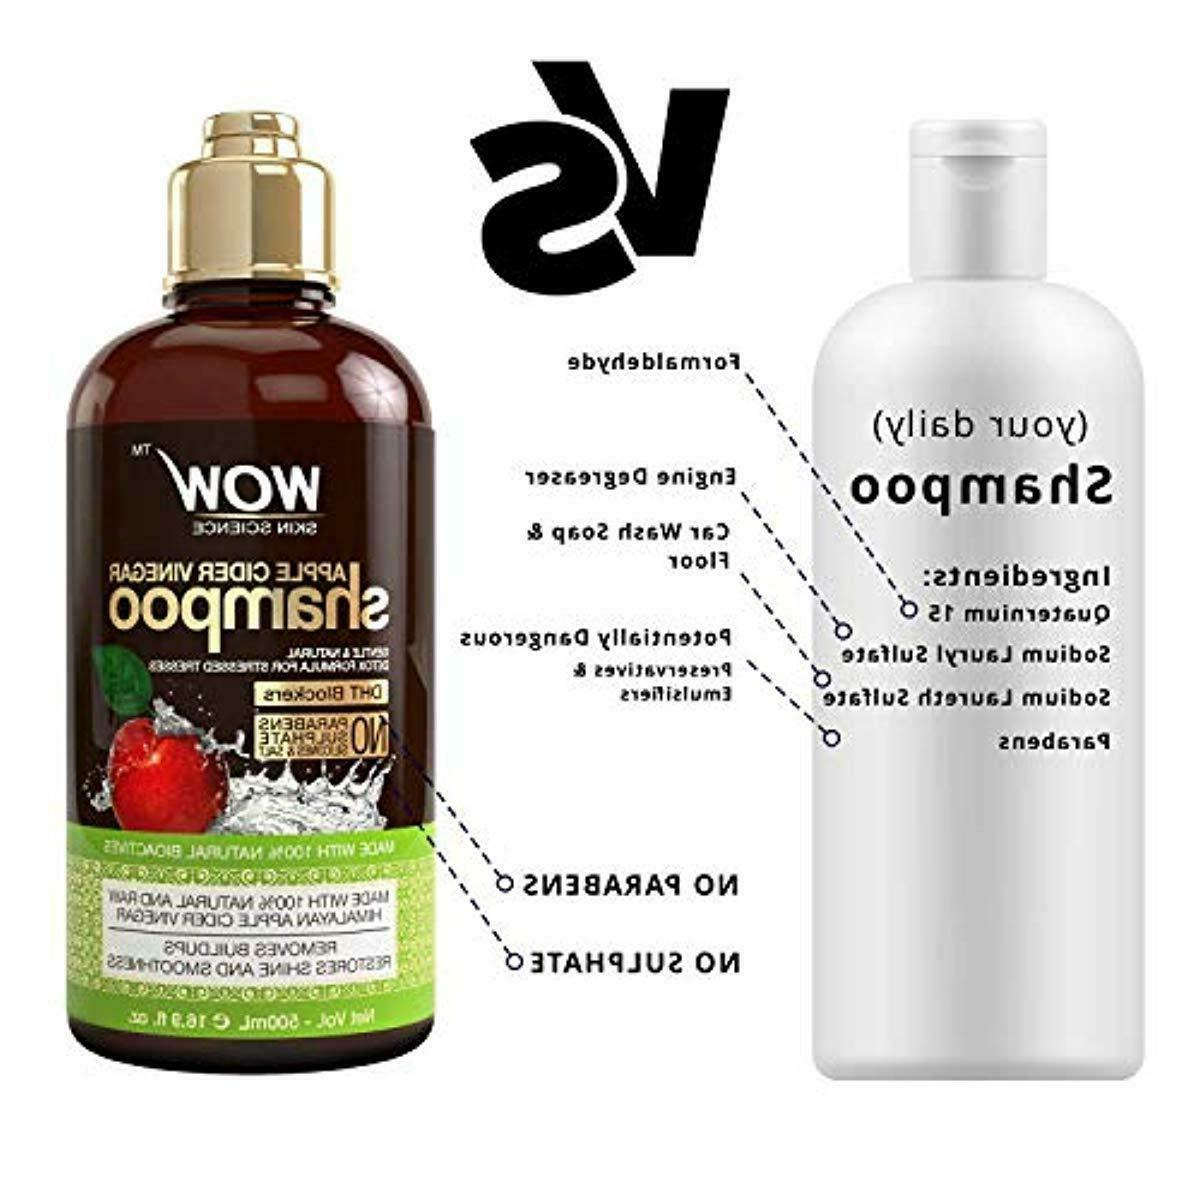 WOW Apple Shampoo And Conditioner Set Increase Gloss Hair